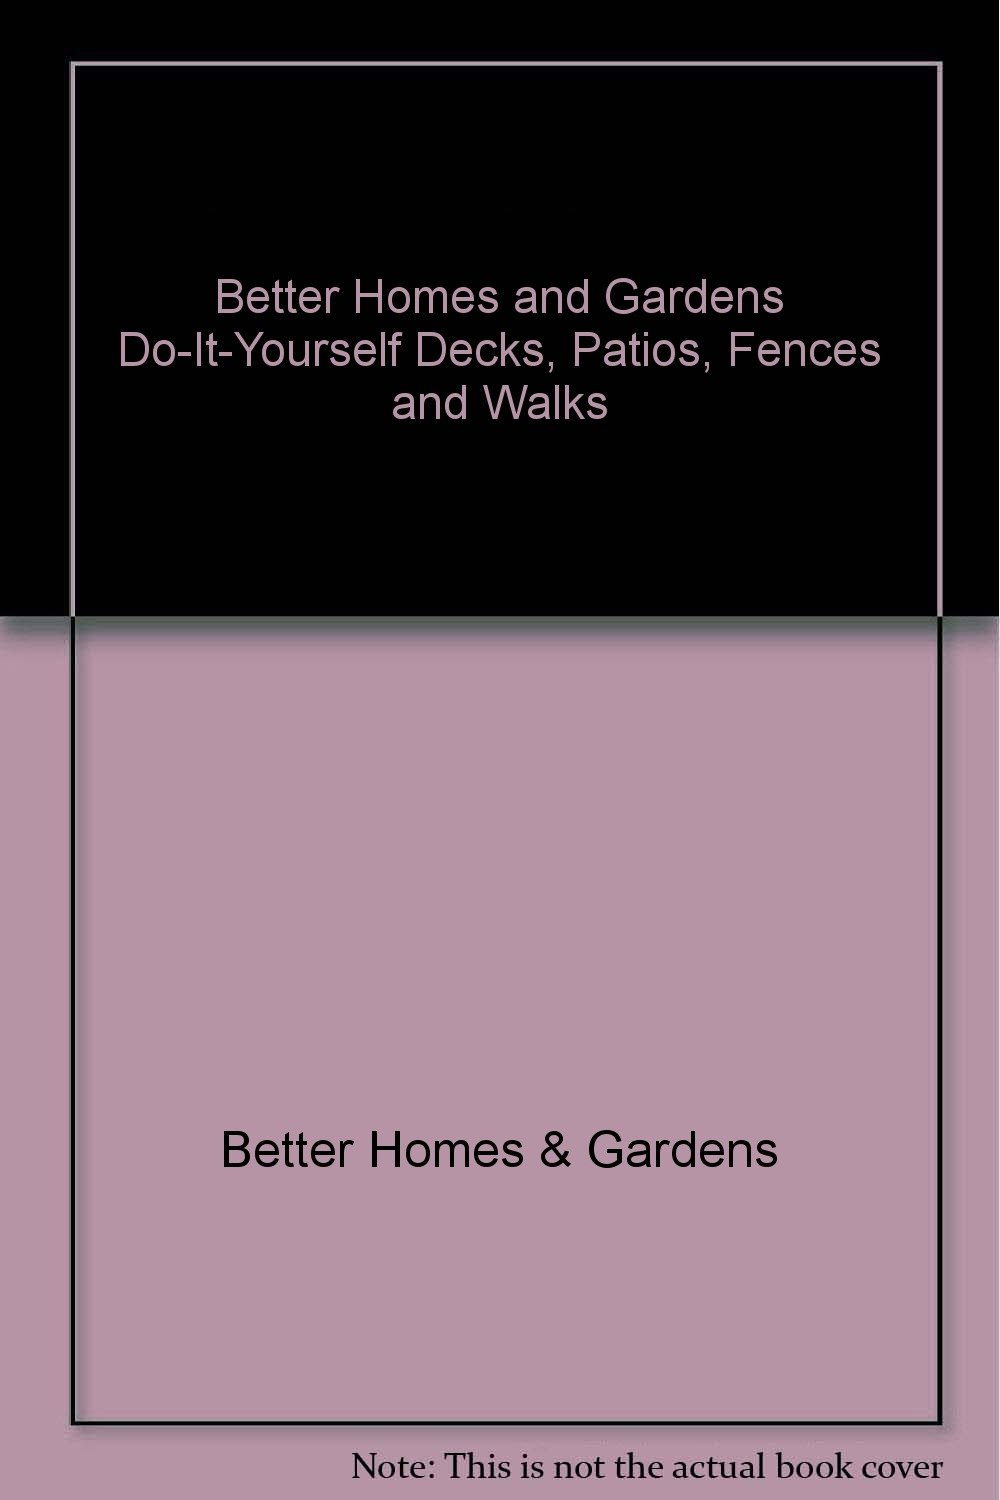 Better Homes and Gardens Do-It-Yourself Decks, Patios, Fences and Walks